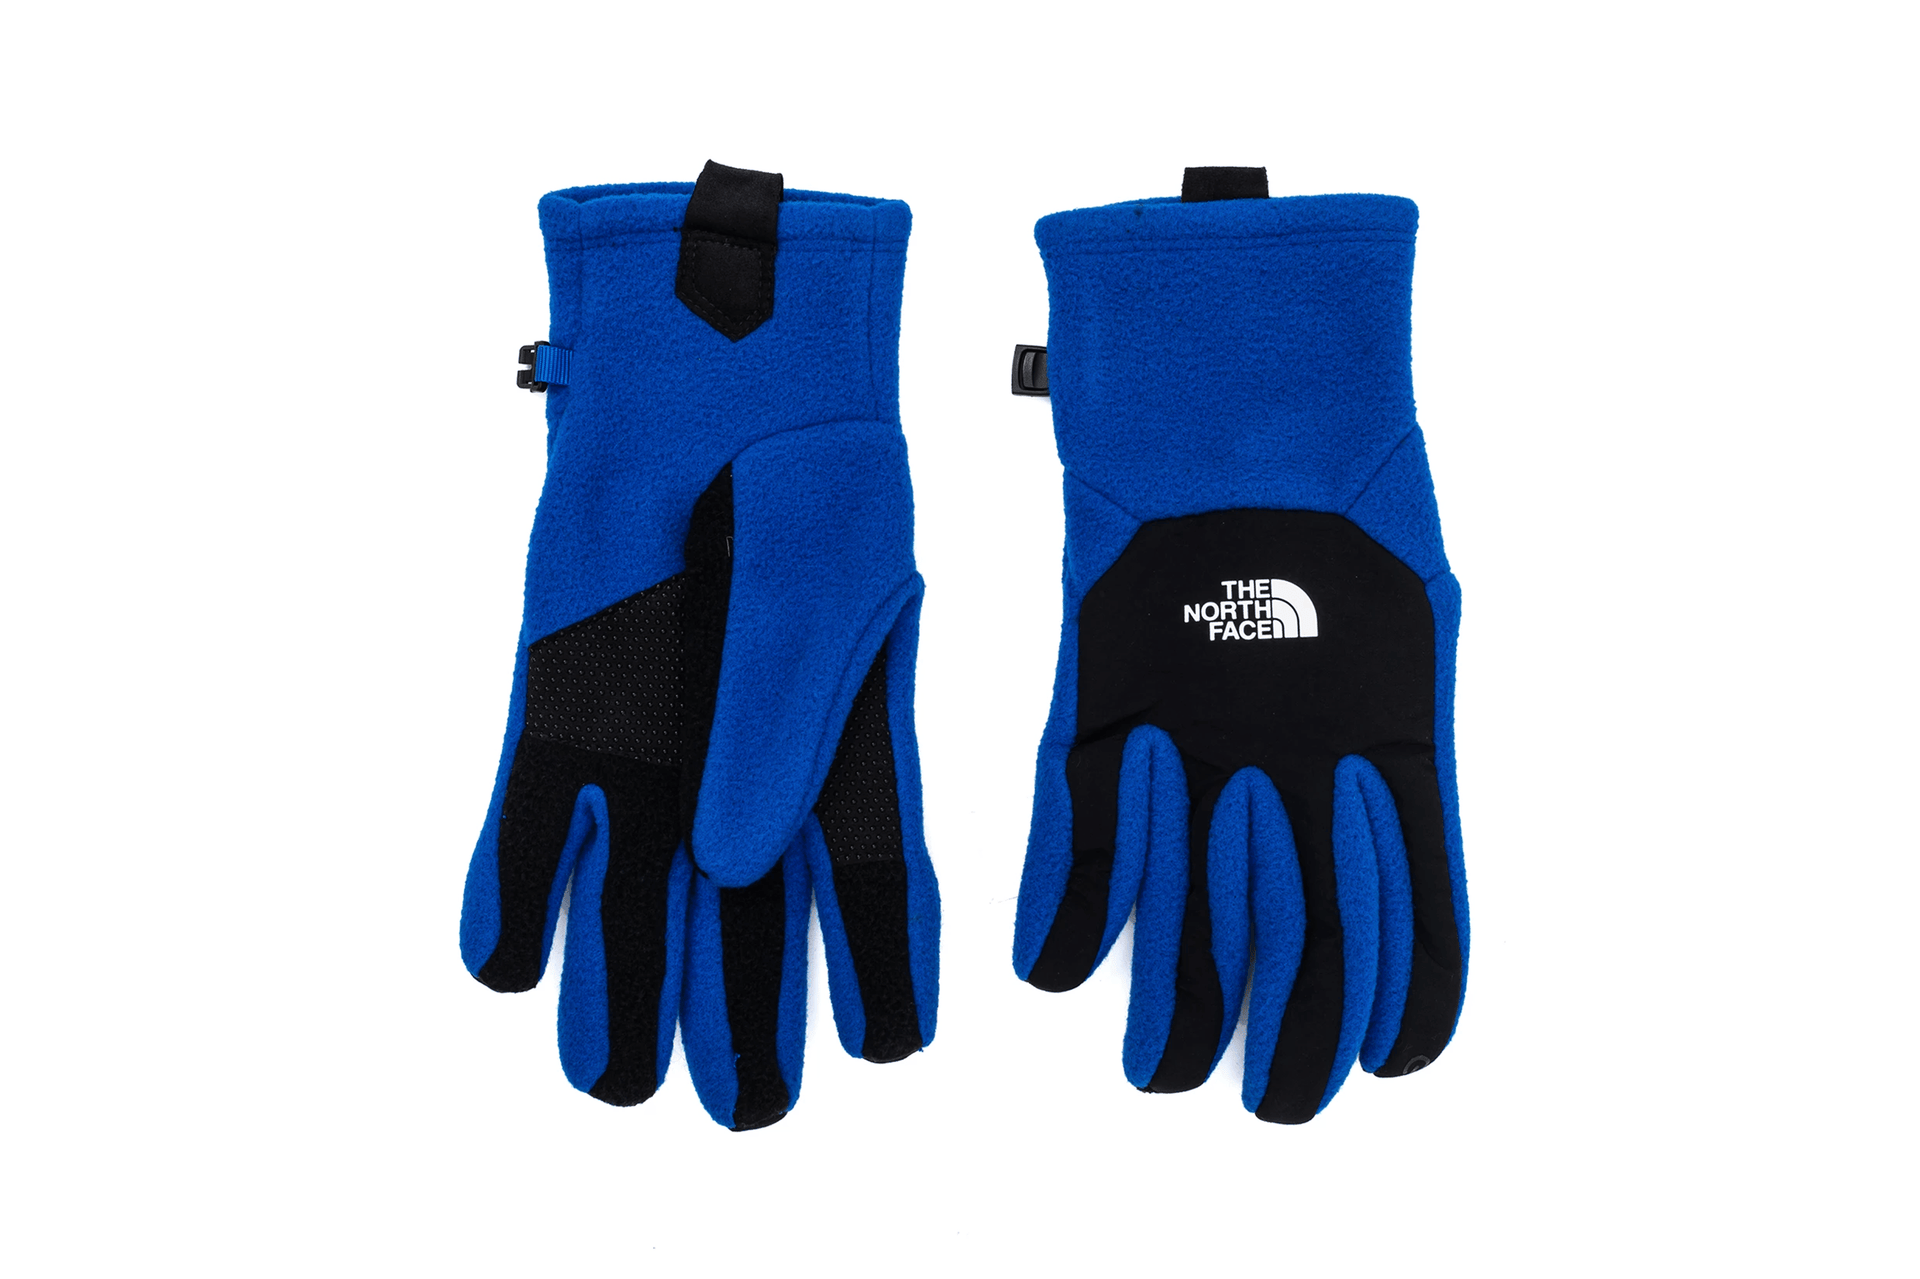 DENALI ETIP GLOVE - NF0A3KP5CZ6 ACCESSORIES THE NORTH FACE